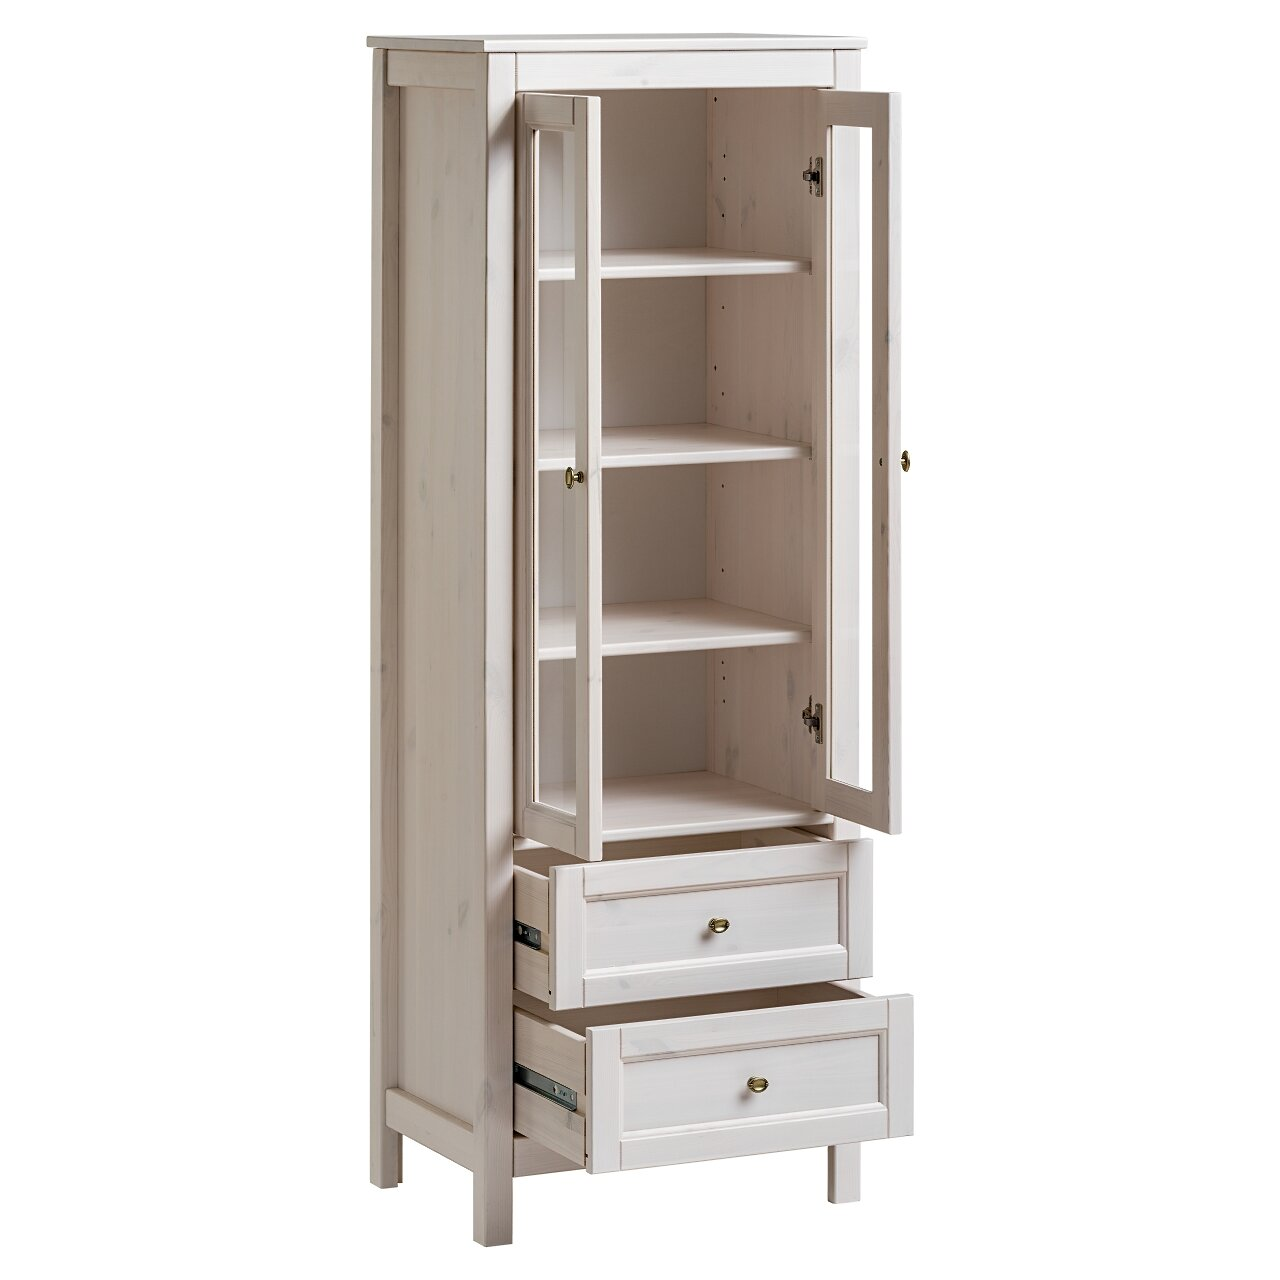 Belfry Bathroom Royal 55 X 155cm Free Standing Bathroom Cabinet